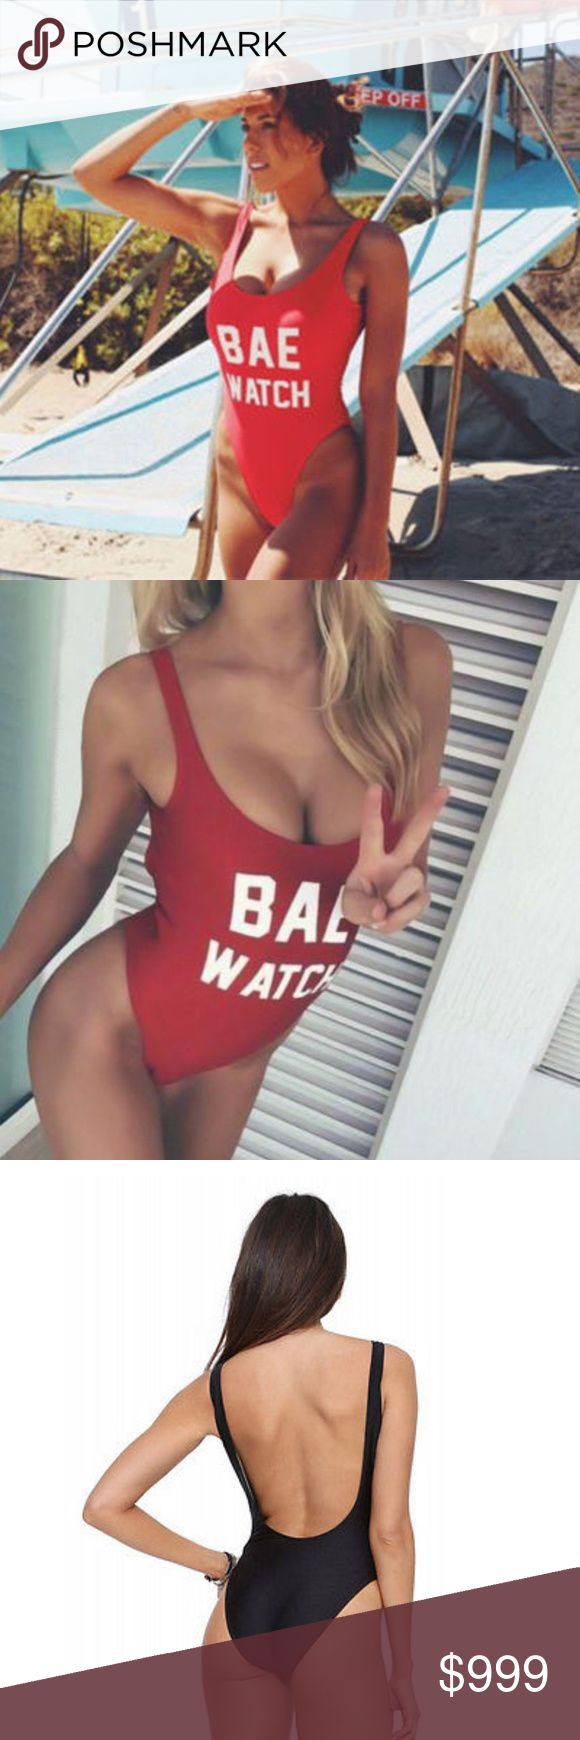 NEW! Red BAE Watch One-Piece Swim Coming Soon!  NEW! Red BAE Watch One-Piece Swimsuit - Super Sexy! Low-Cut in the back Polyester Spandex Material  Bundle & Save! Free Gift with Every Purchase! Swim One Pieces